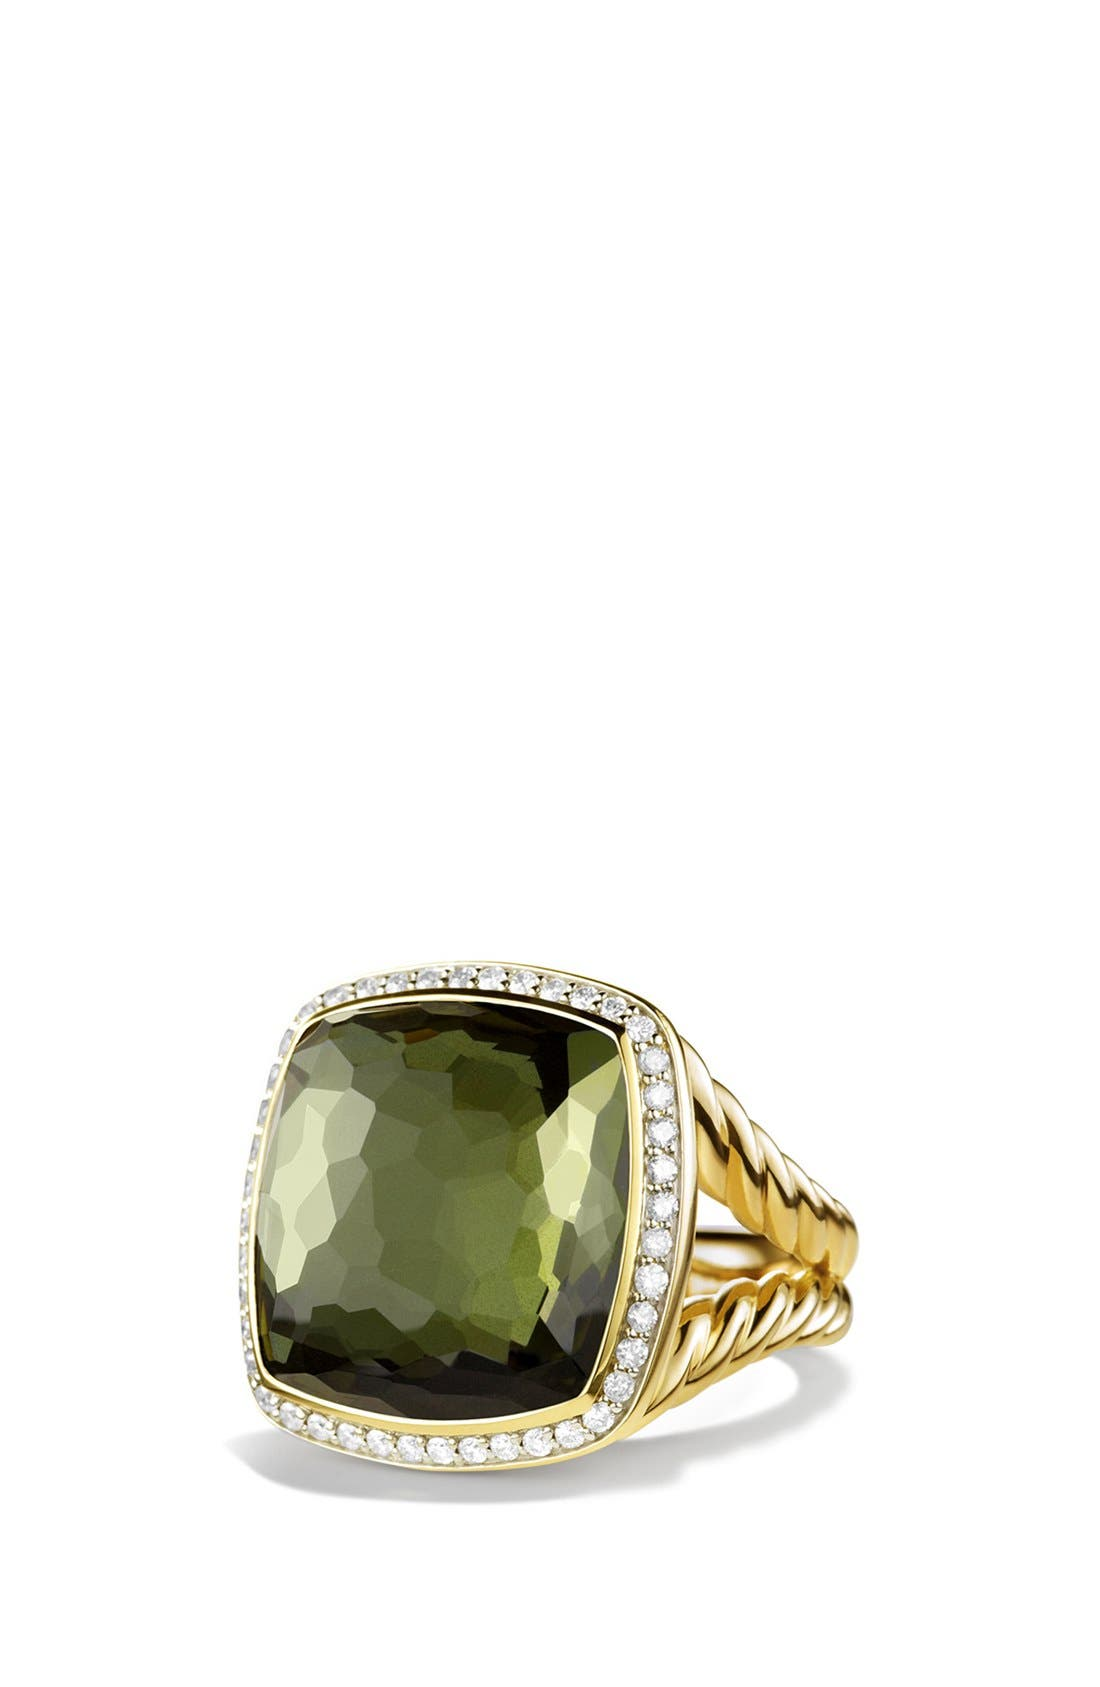 Alternate Image 1 Selected - David Yurman 'Albion' Ring with Citrine and Diamonds in Gold